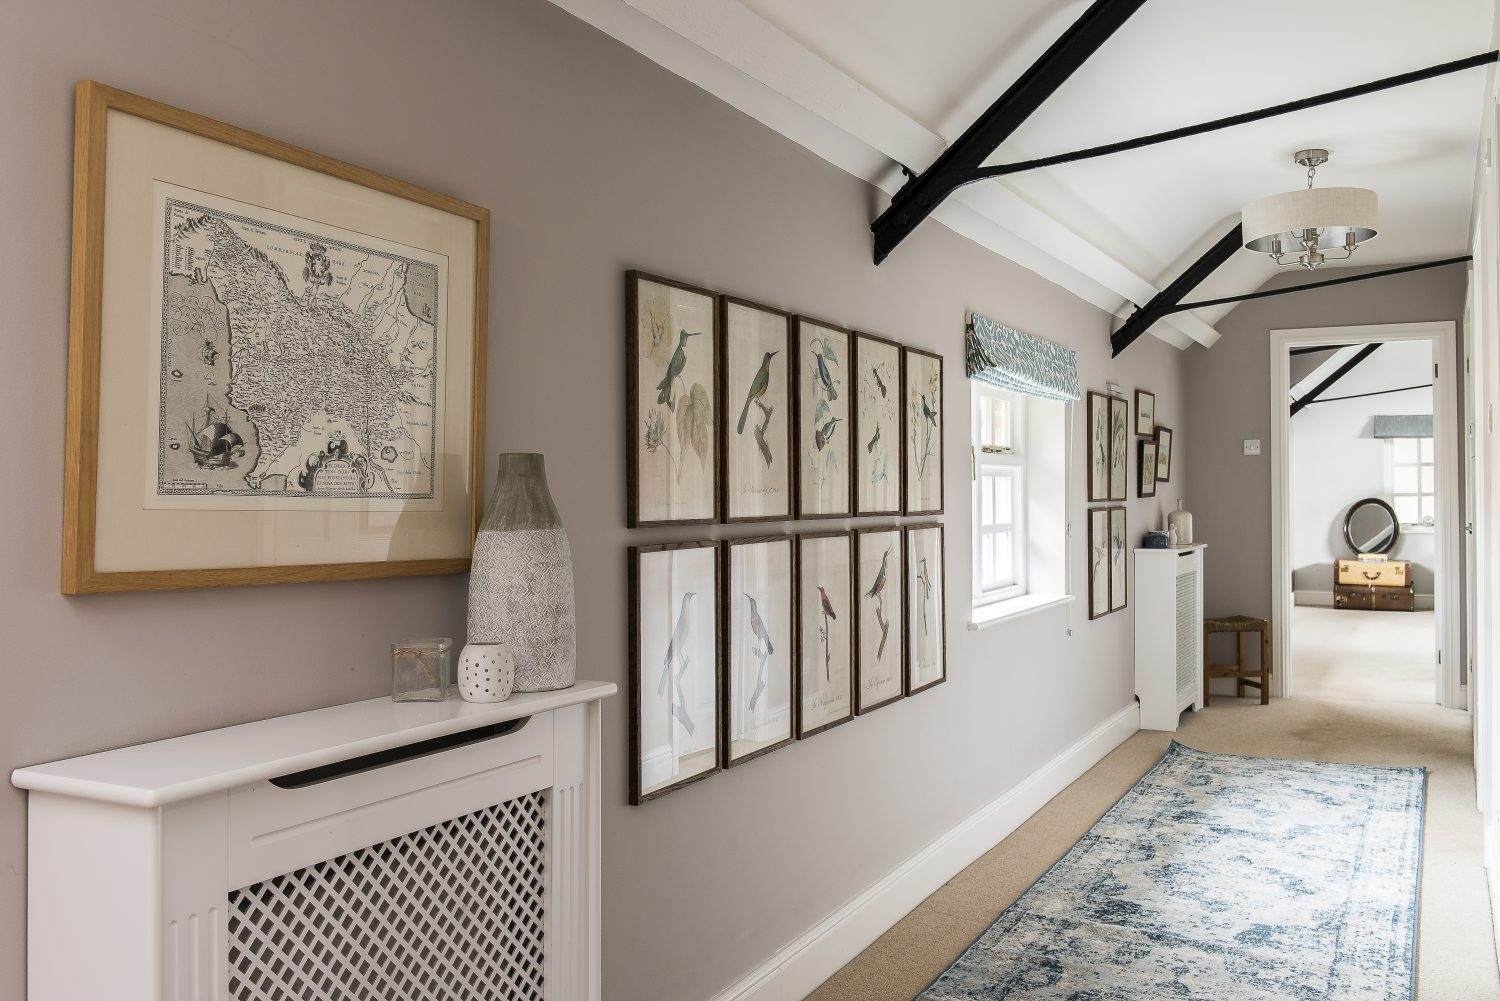 The upstairs hallway is lined with prints, some of which were bought on holiday in Italy